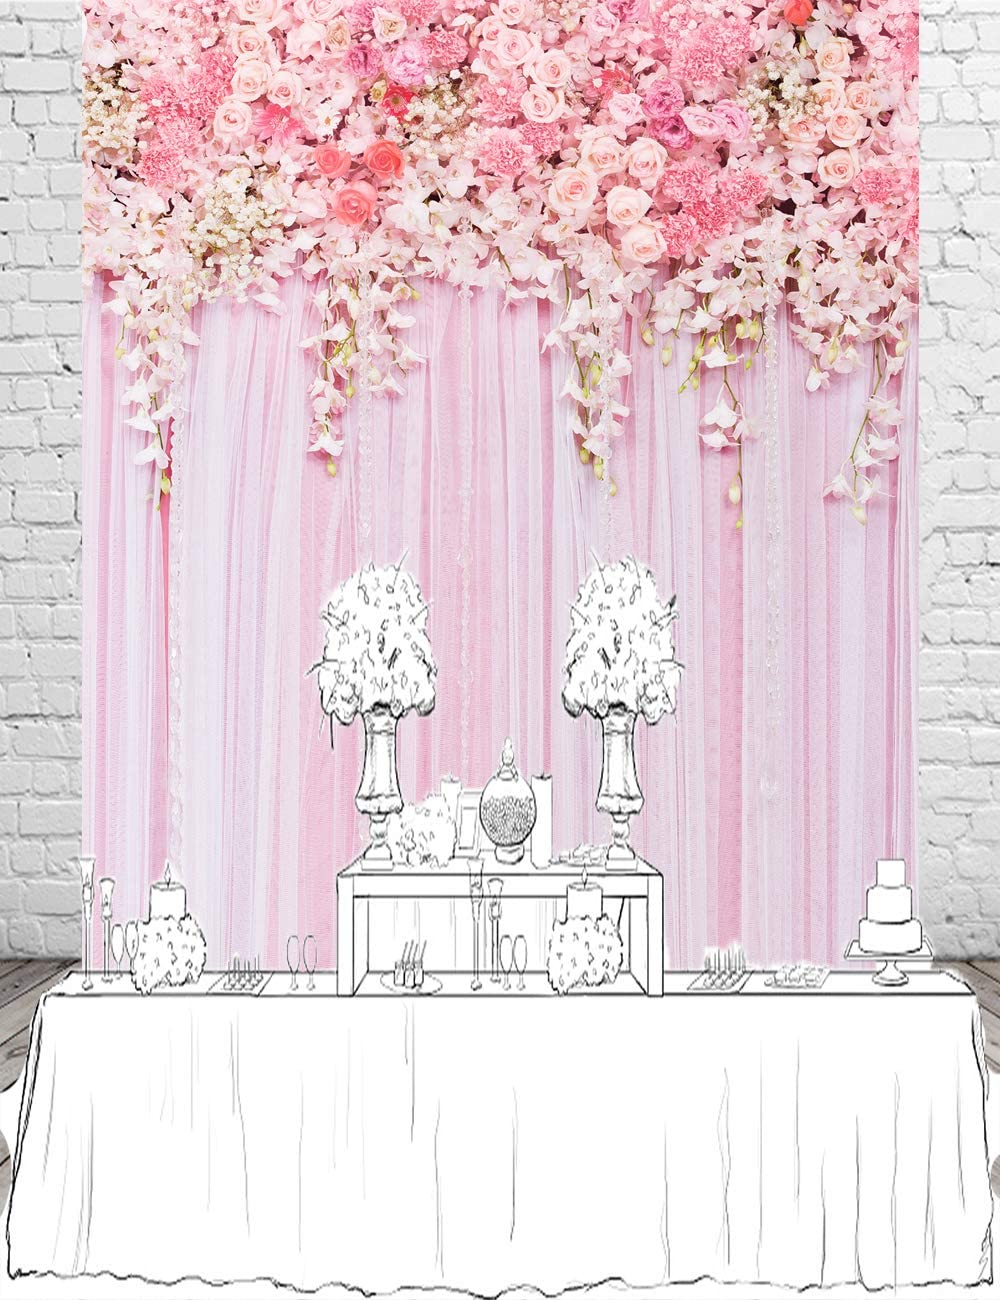 Muzi 5x7ft Pink Flower Wall Photography Backdrops Curtain Backdrop for Pictures Newborn Birthday Wedding Party Decoration D-9354